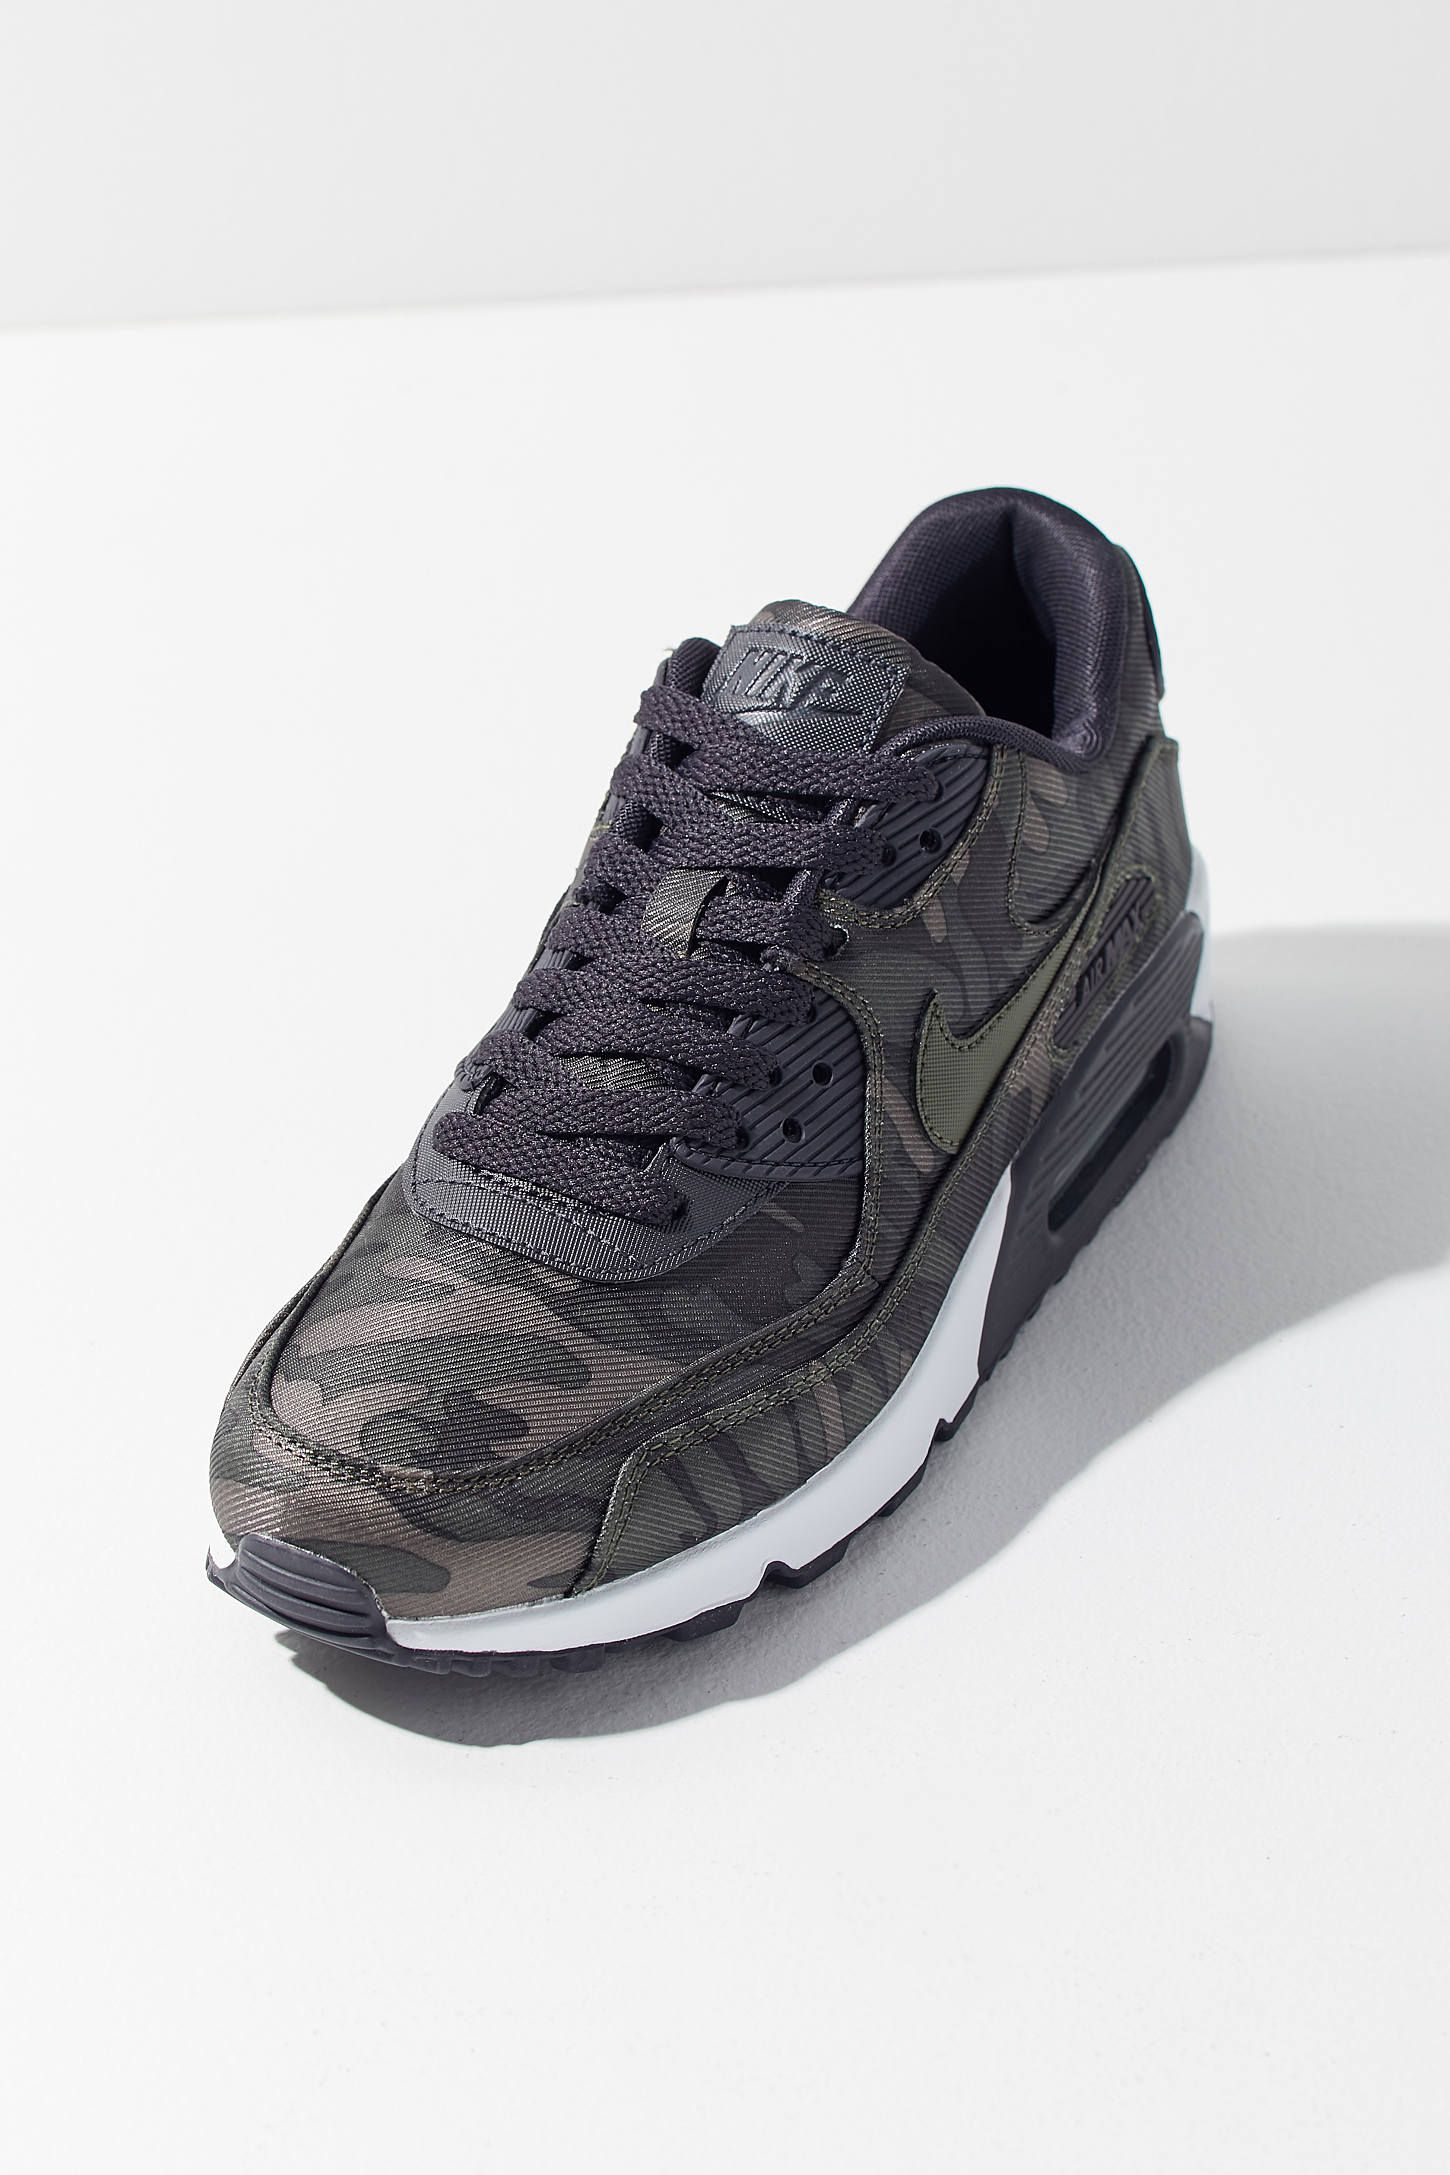 half off ee2cb dc30b Nike Air Max 90 Camo Sneaker   Urban Outfitters